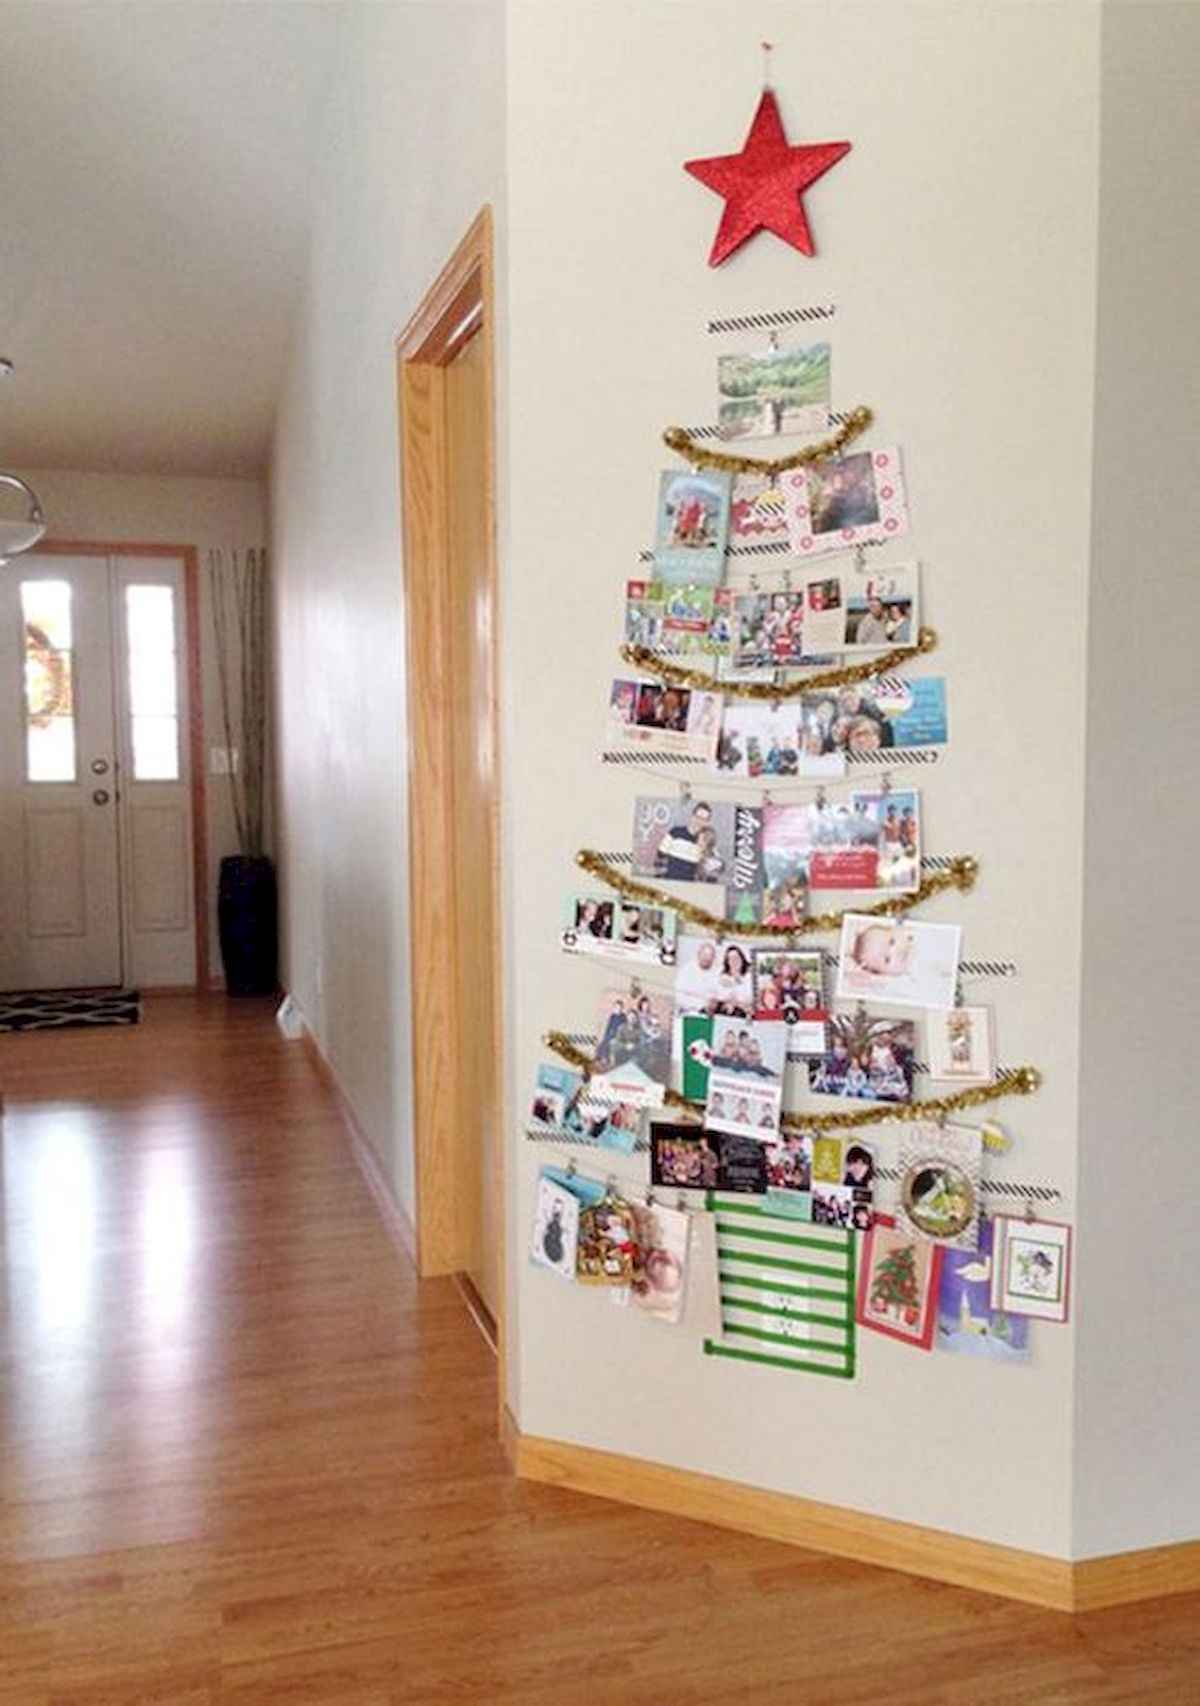 60 awesome wall art christmas ideas decorations (9)